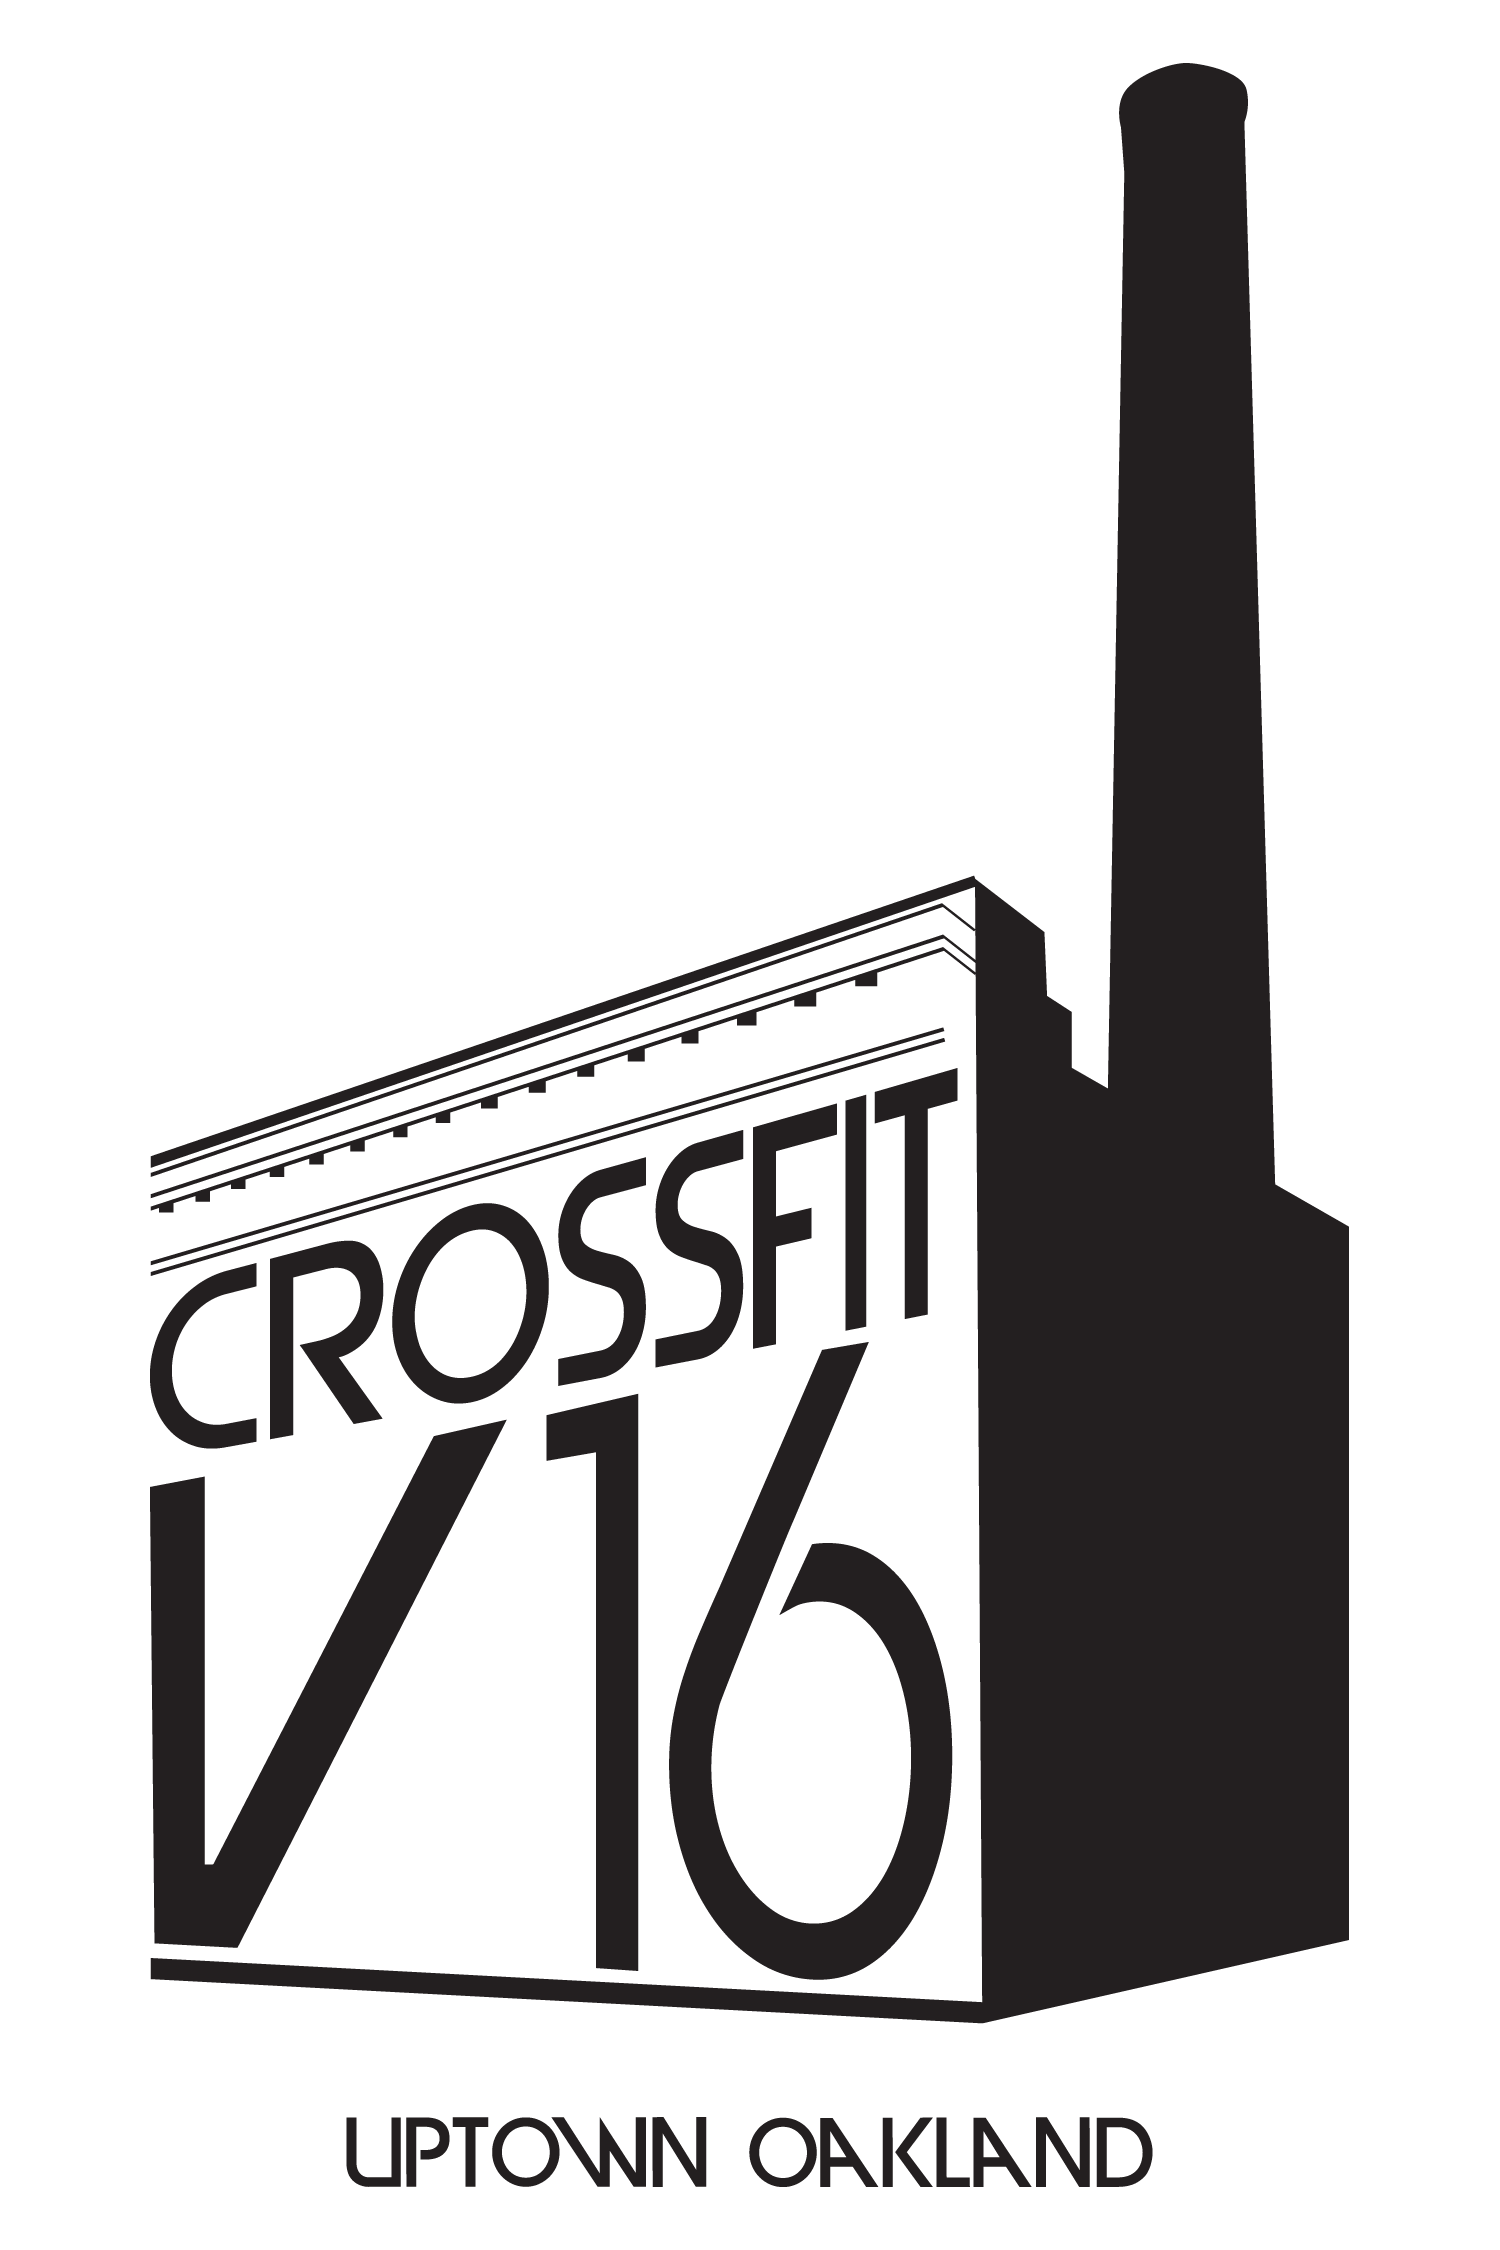 CrossFit V16 in Uptown Oakland